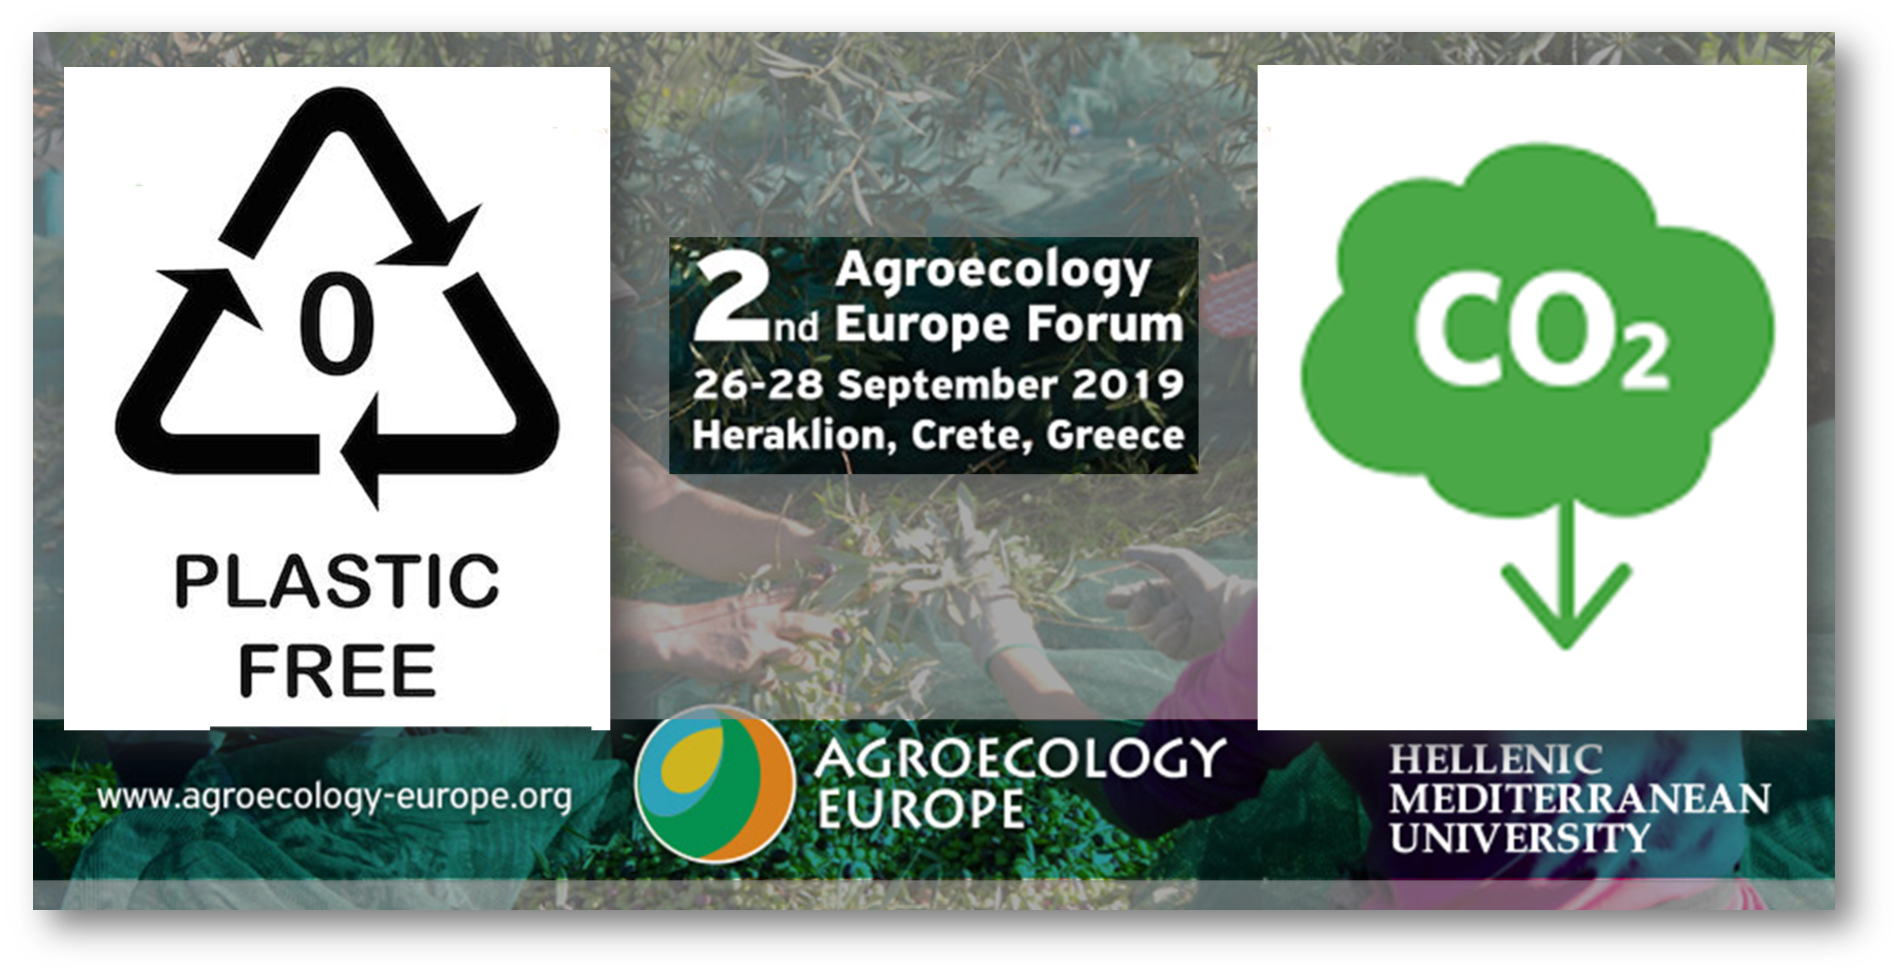 We Follow A Plastic Free And Carbon Emissions Offset Policy Second Agroecology Europe Forum In Crete